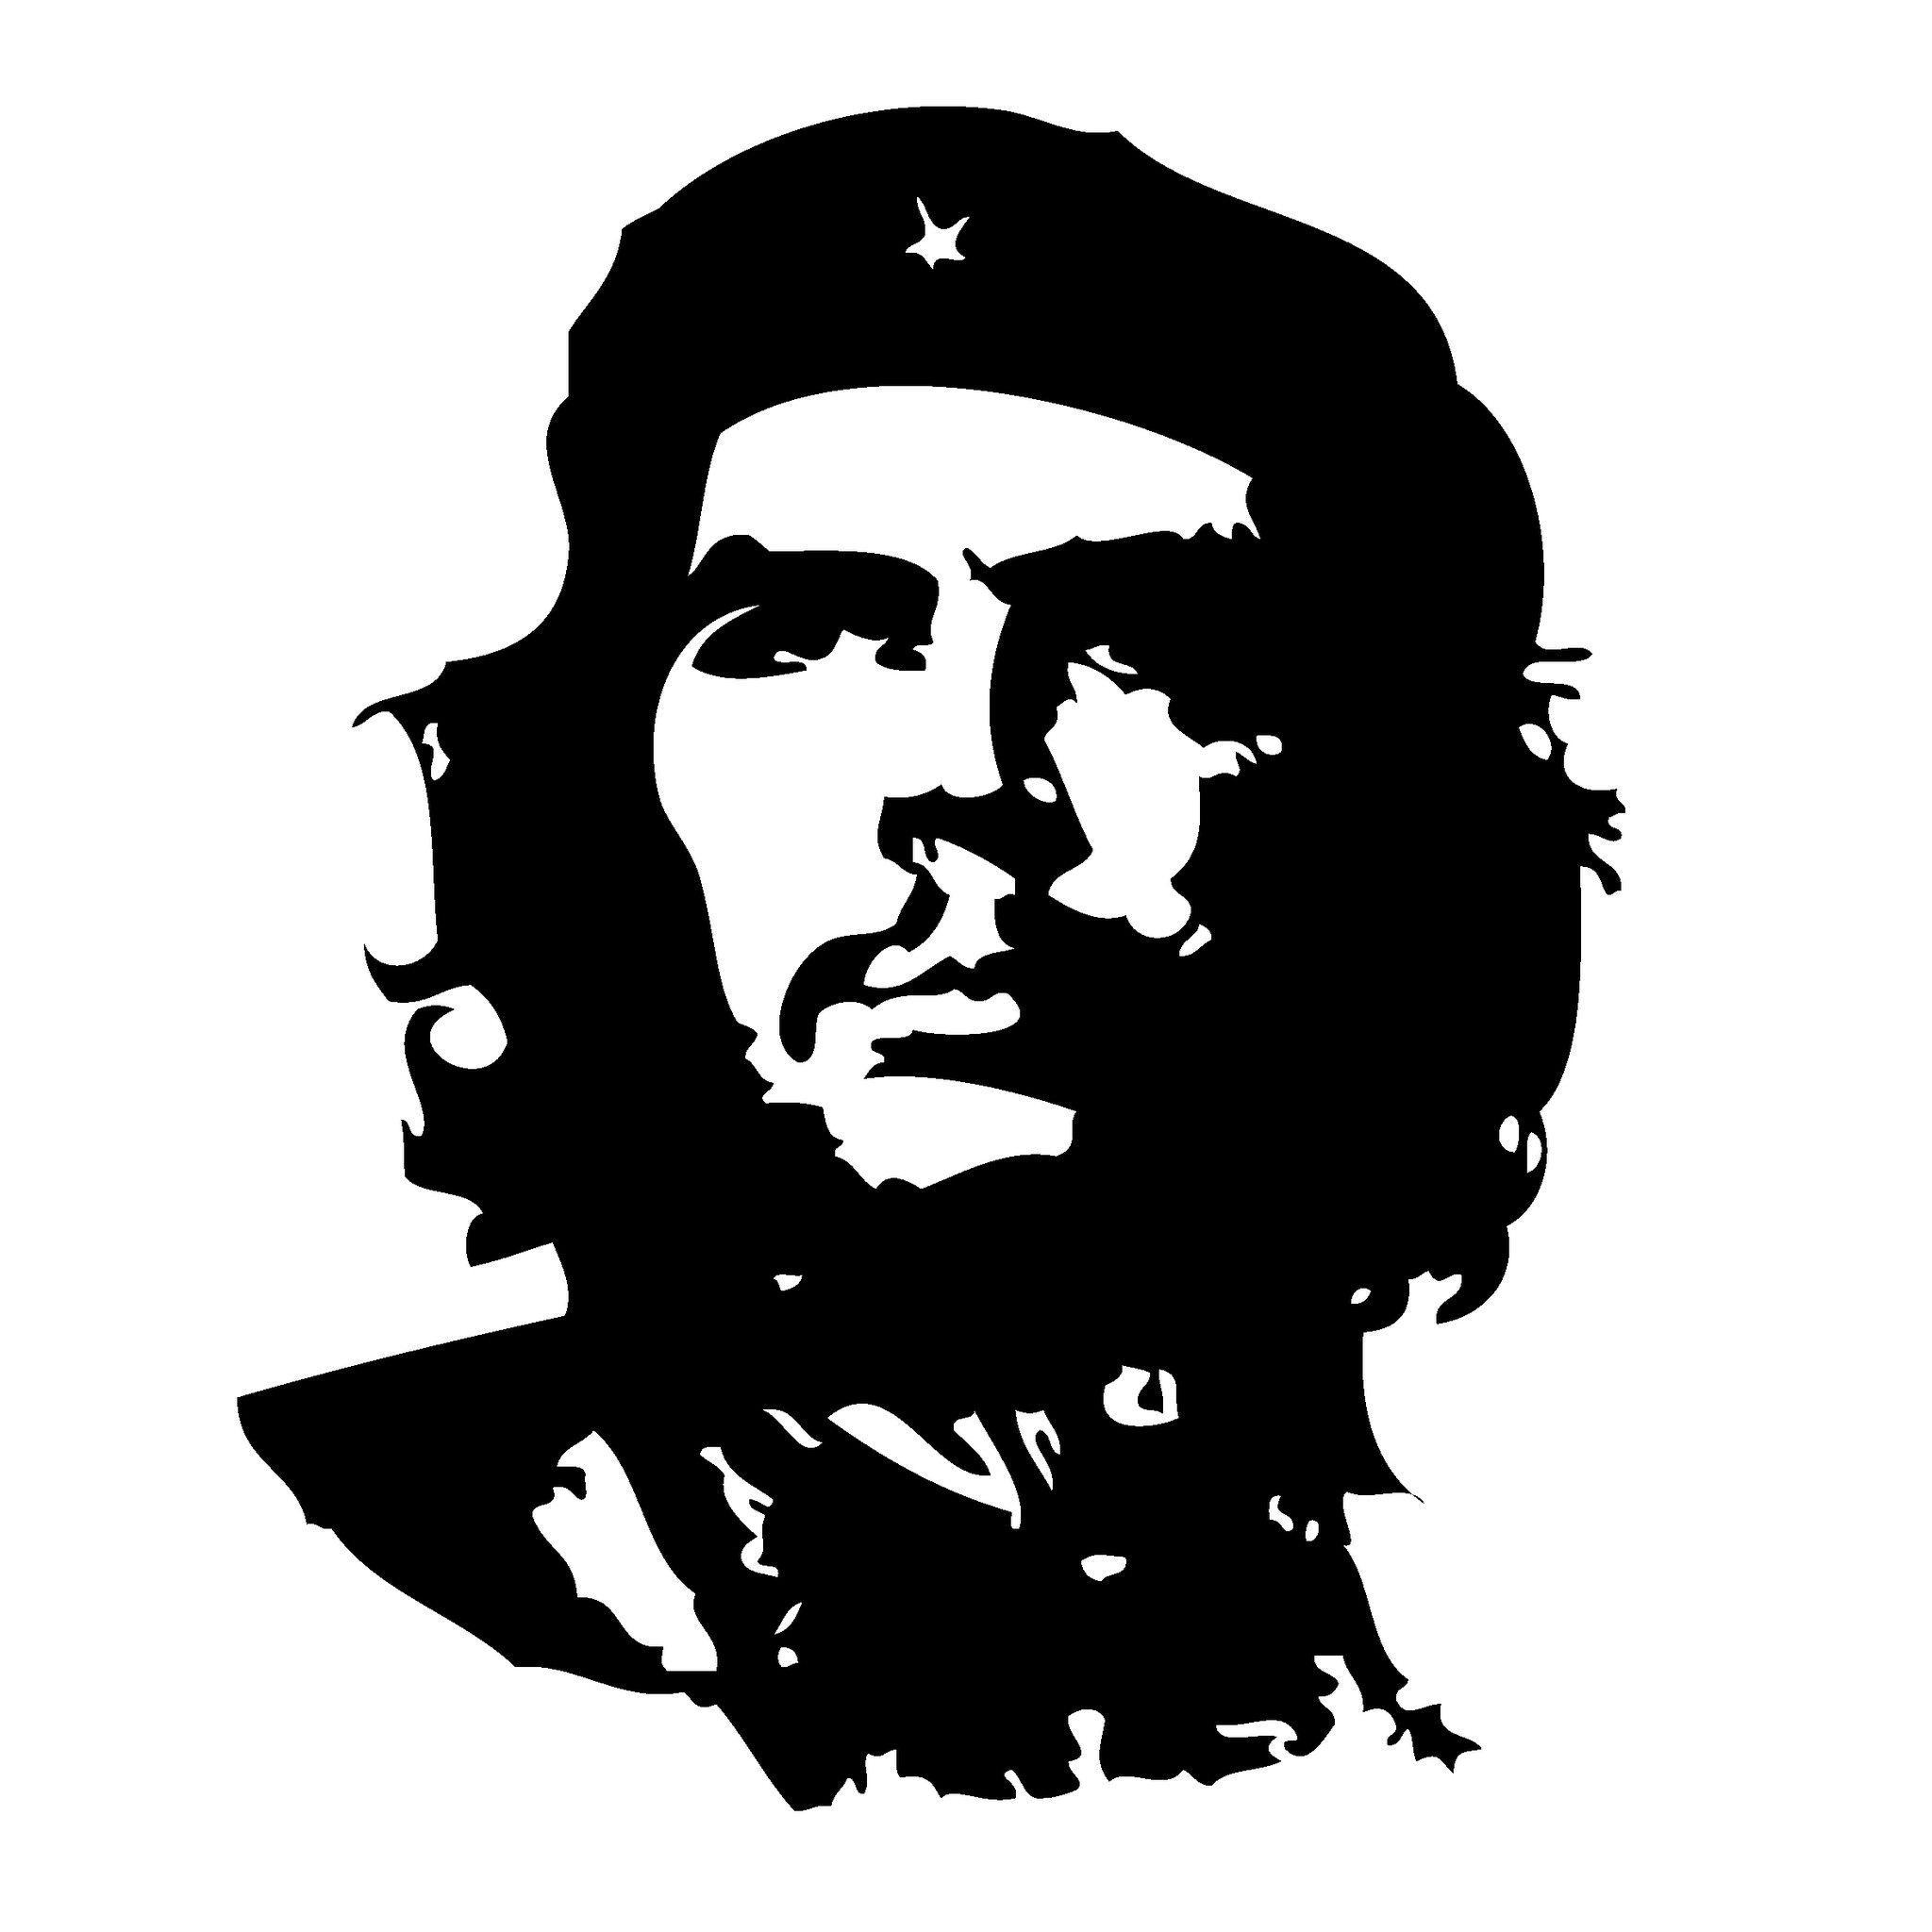 guevara Central american history latin american history ebooks historical biographies biographies of political leaders revolutionary historical study.